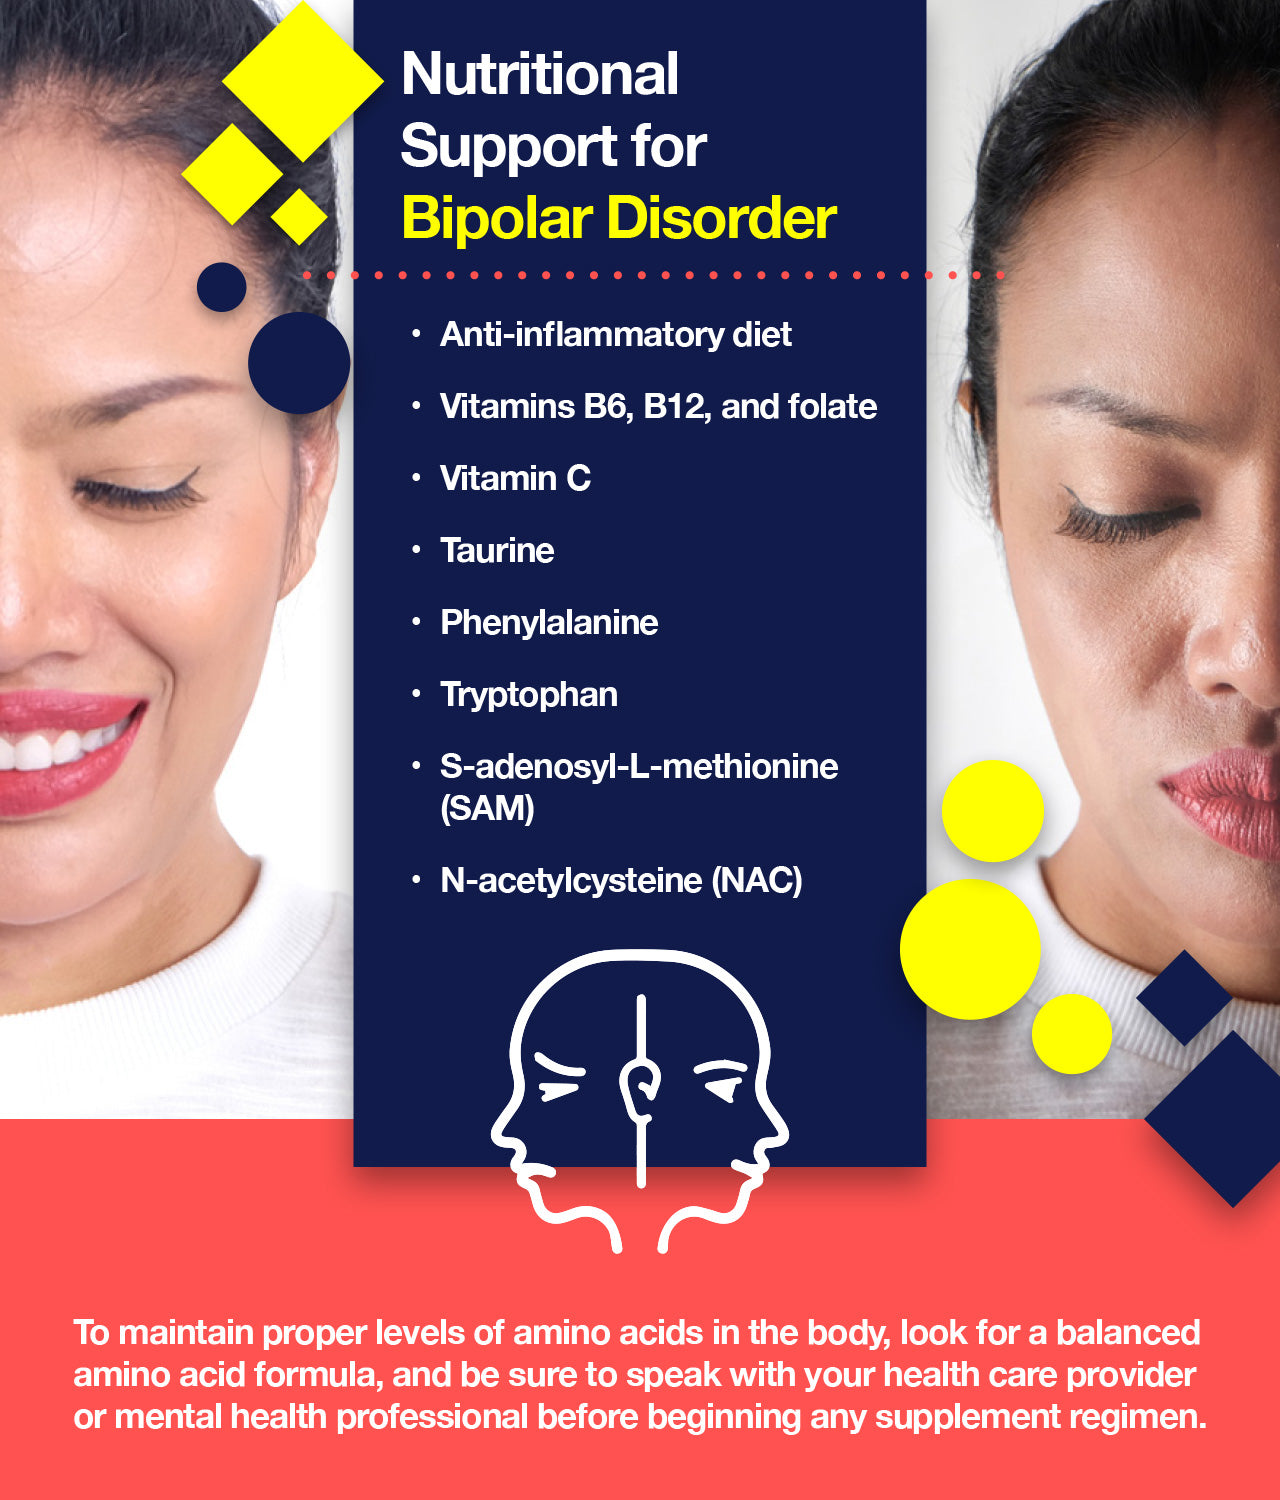 Nutritional support for bipolar disorder